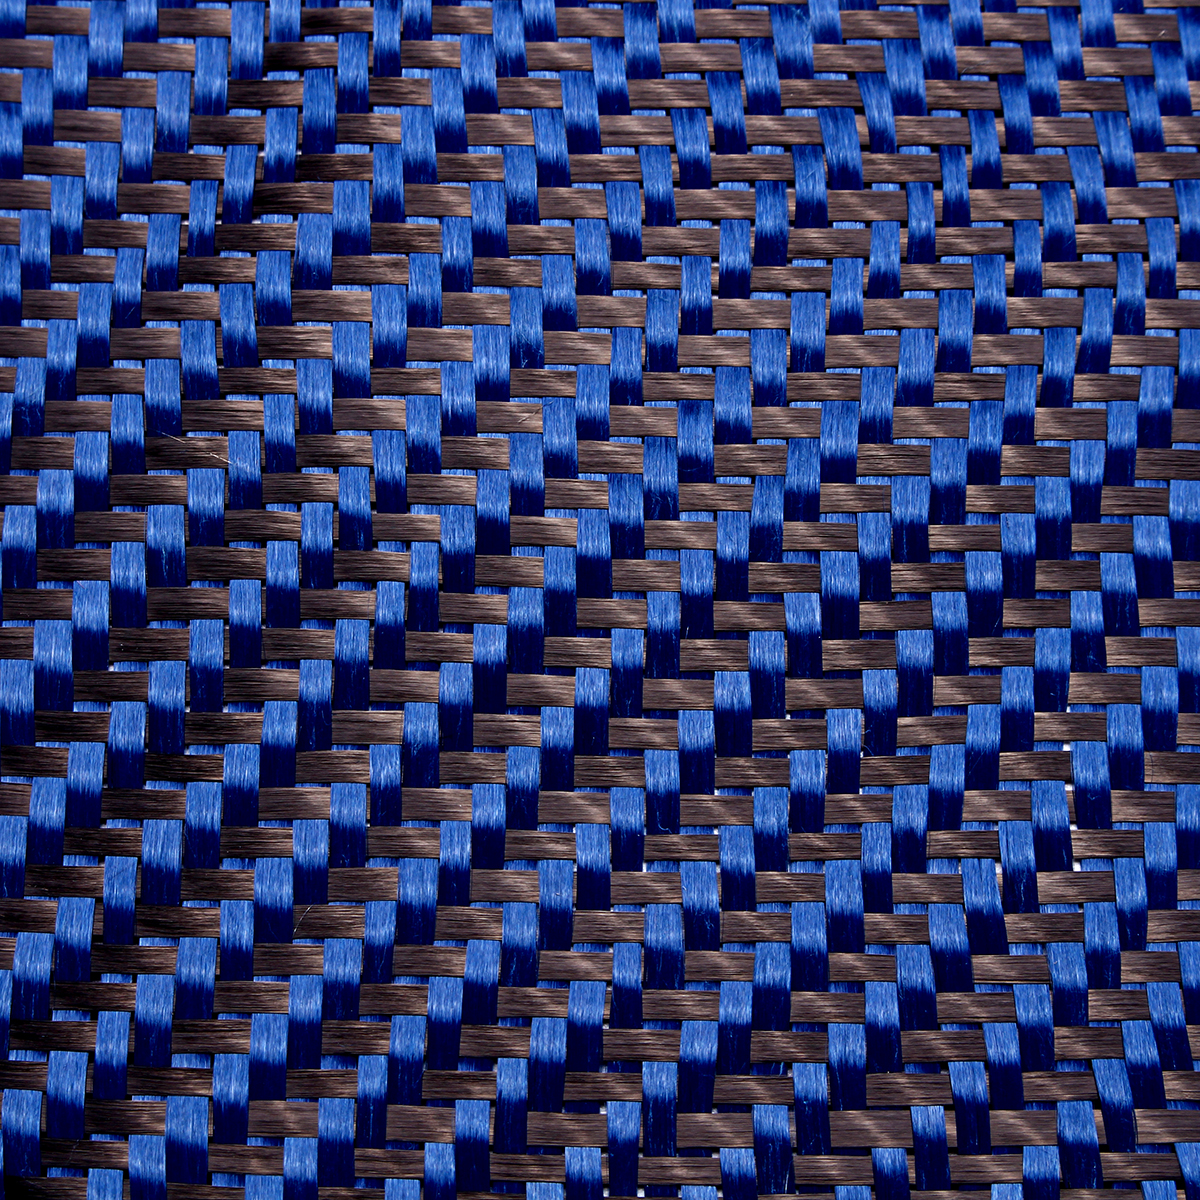 3K 200gsm Blue Carbon Fiber Cloth Setting Fabric Industrial Material Carbon Fiber Board 36x12 Inch